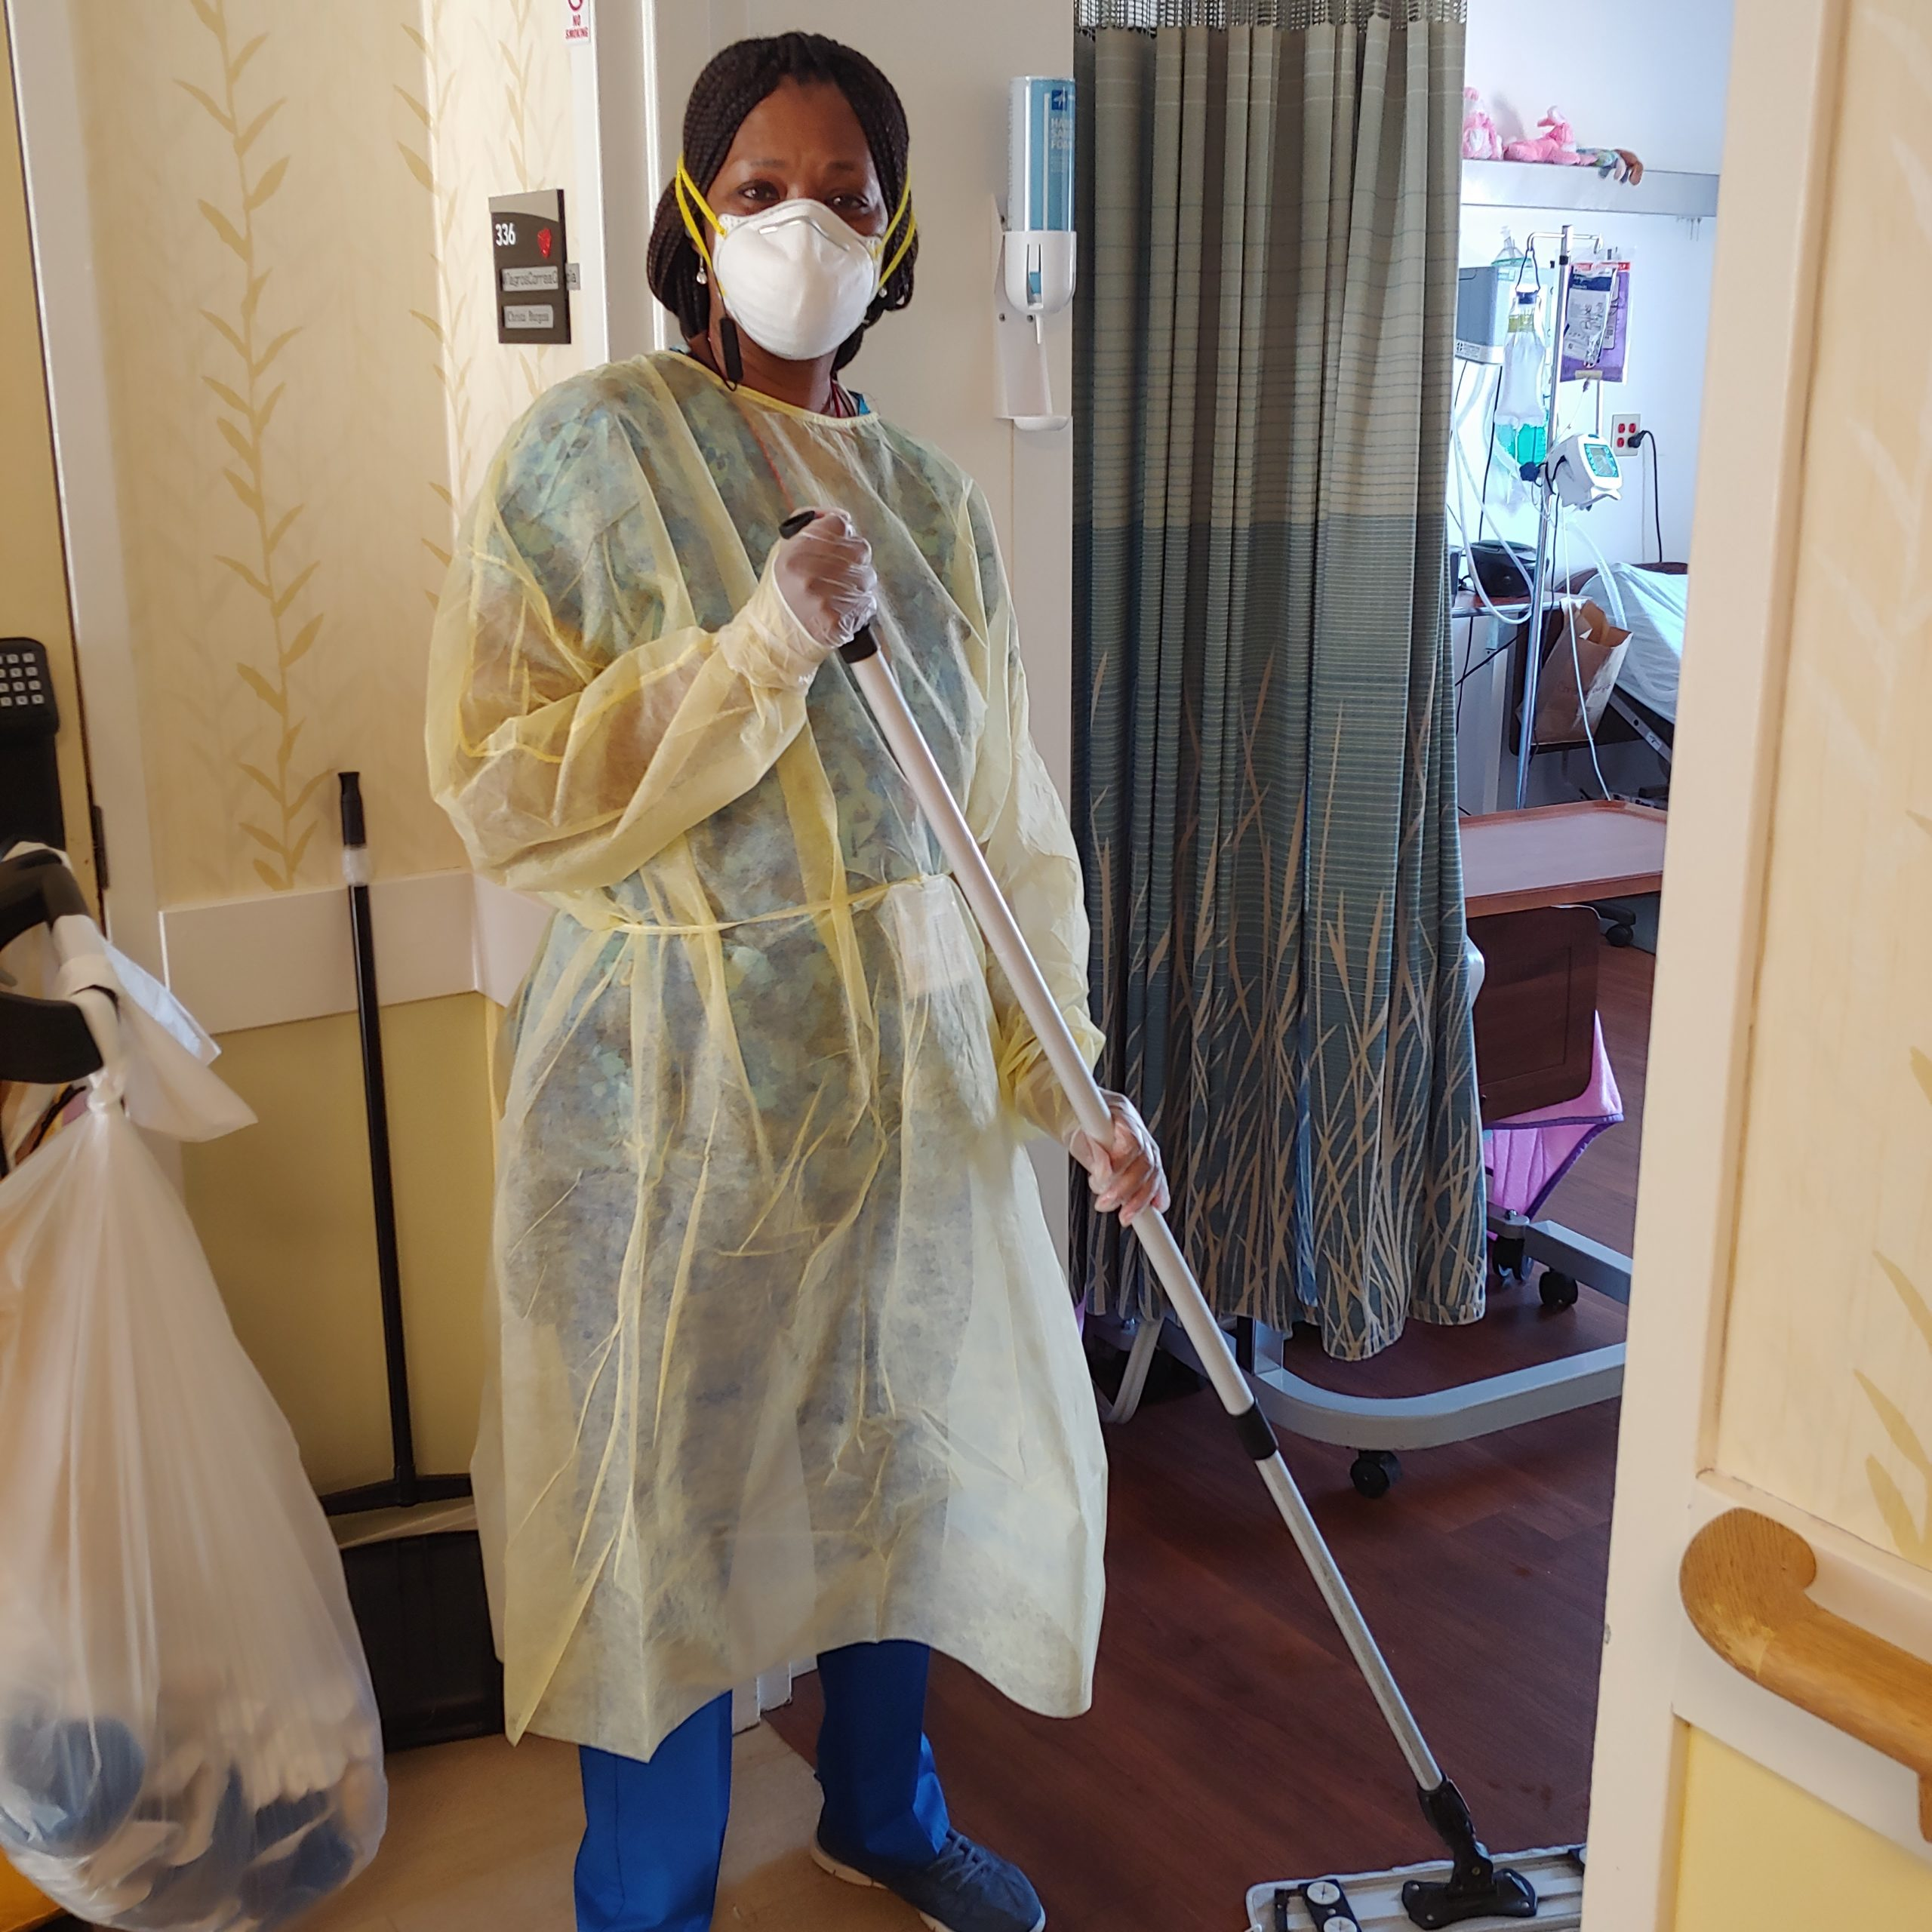 Housekeeping staff wearing PPE  in compliance with COVID-19 infection control and cleaning floor